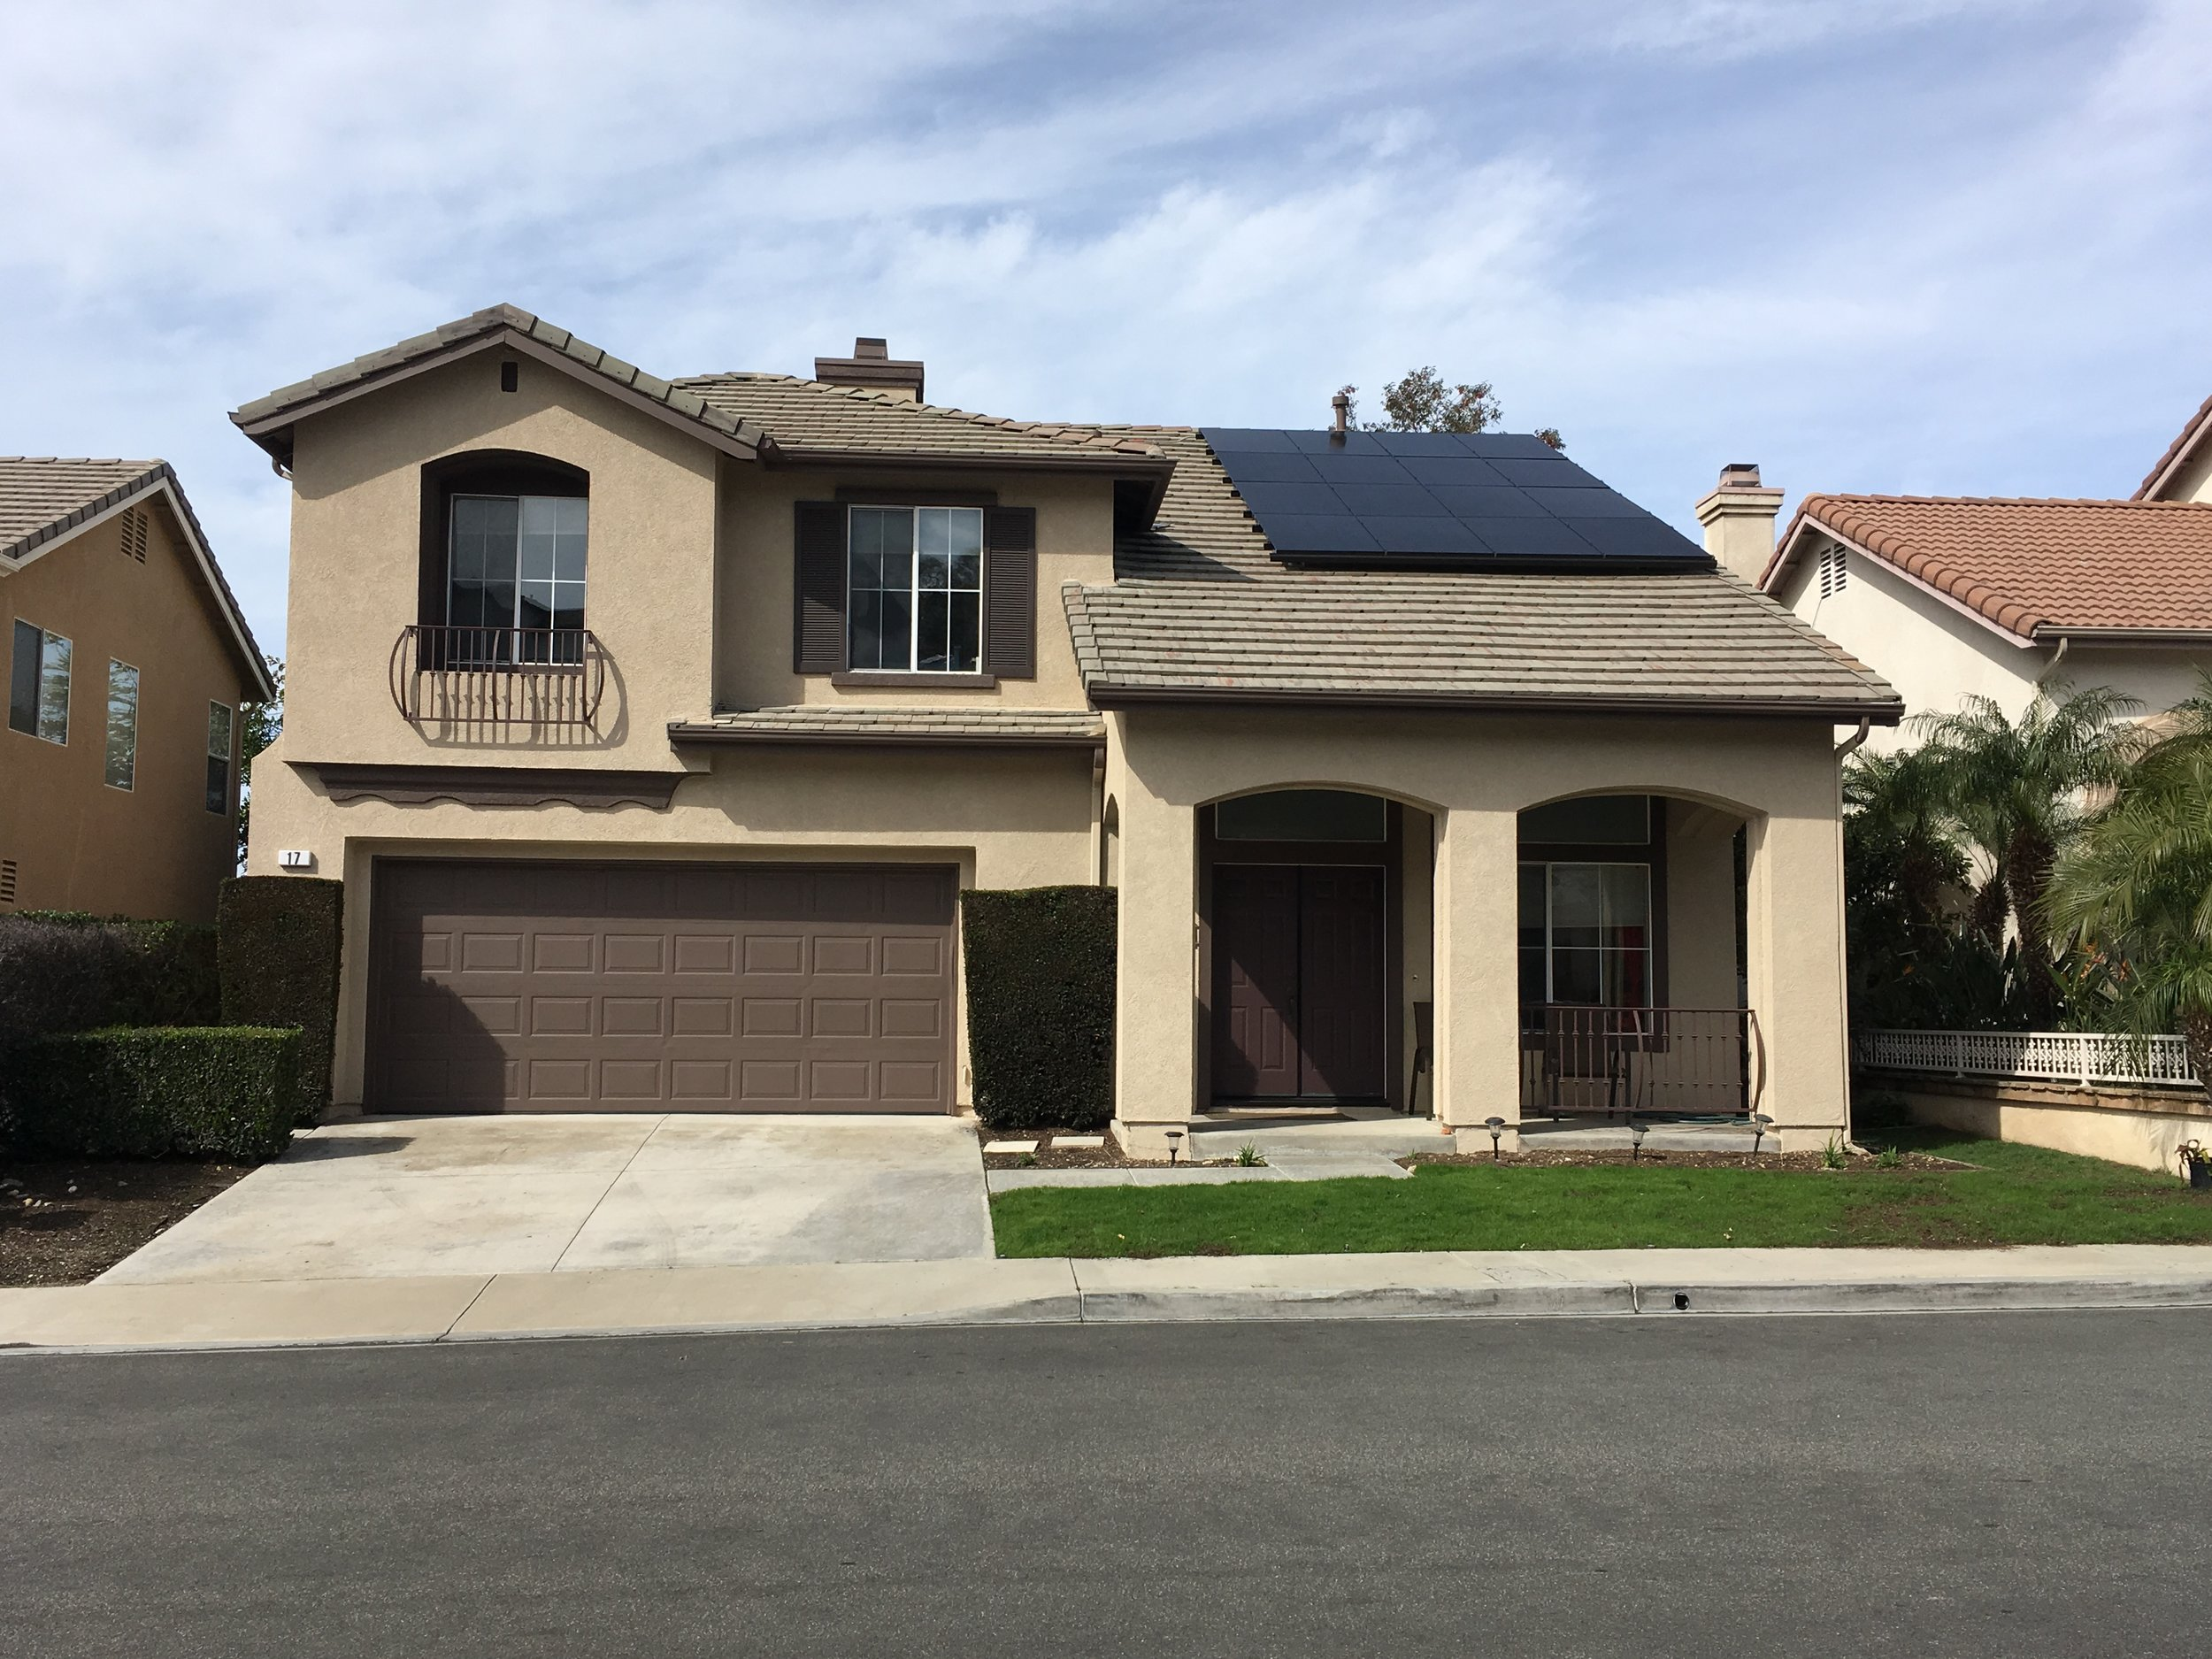 RANCHO SANTA MARGARITA, CA - 16 high efficiency PV modules total to 4.8 kWDC in  Rancho Santa Margarita, CA.  The system was commissioned in 2017.  The system is estimated to save the home owner $42,000 in electricity bill over 25 years.